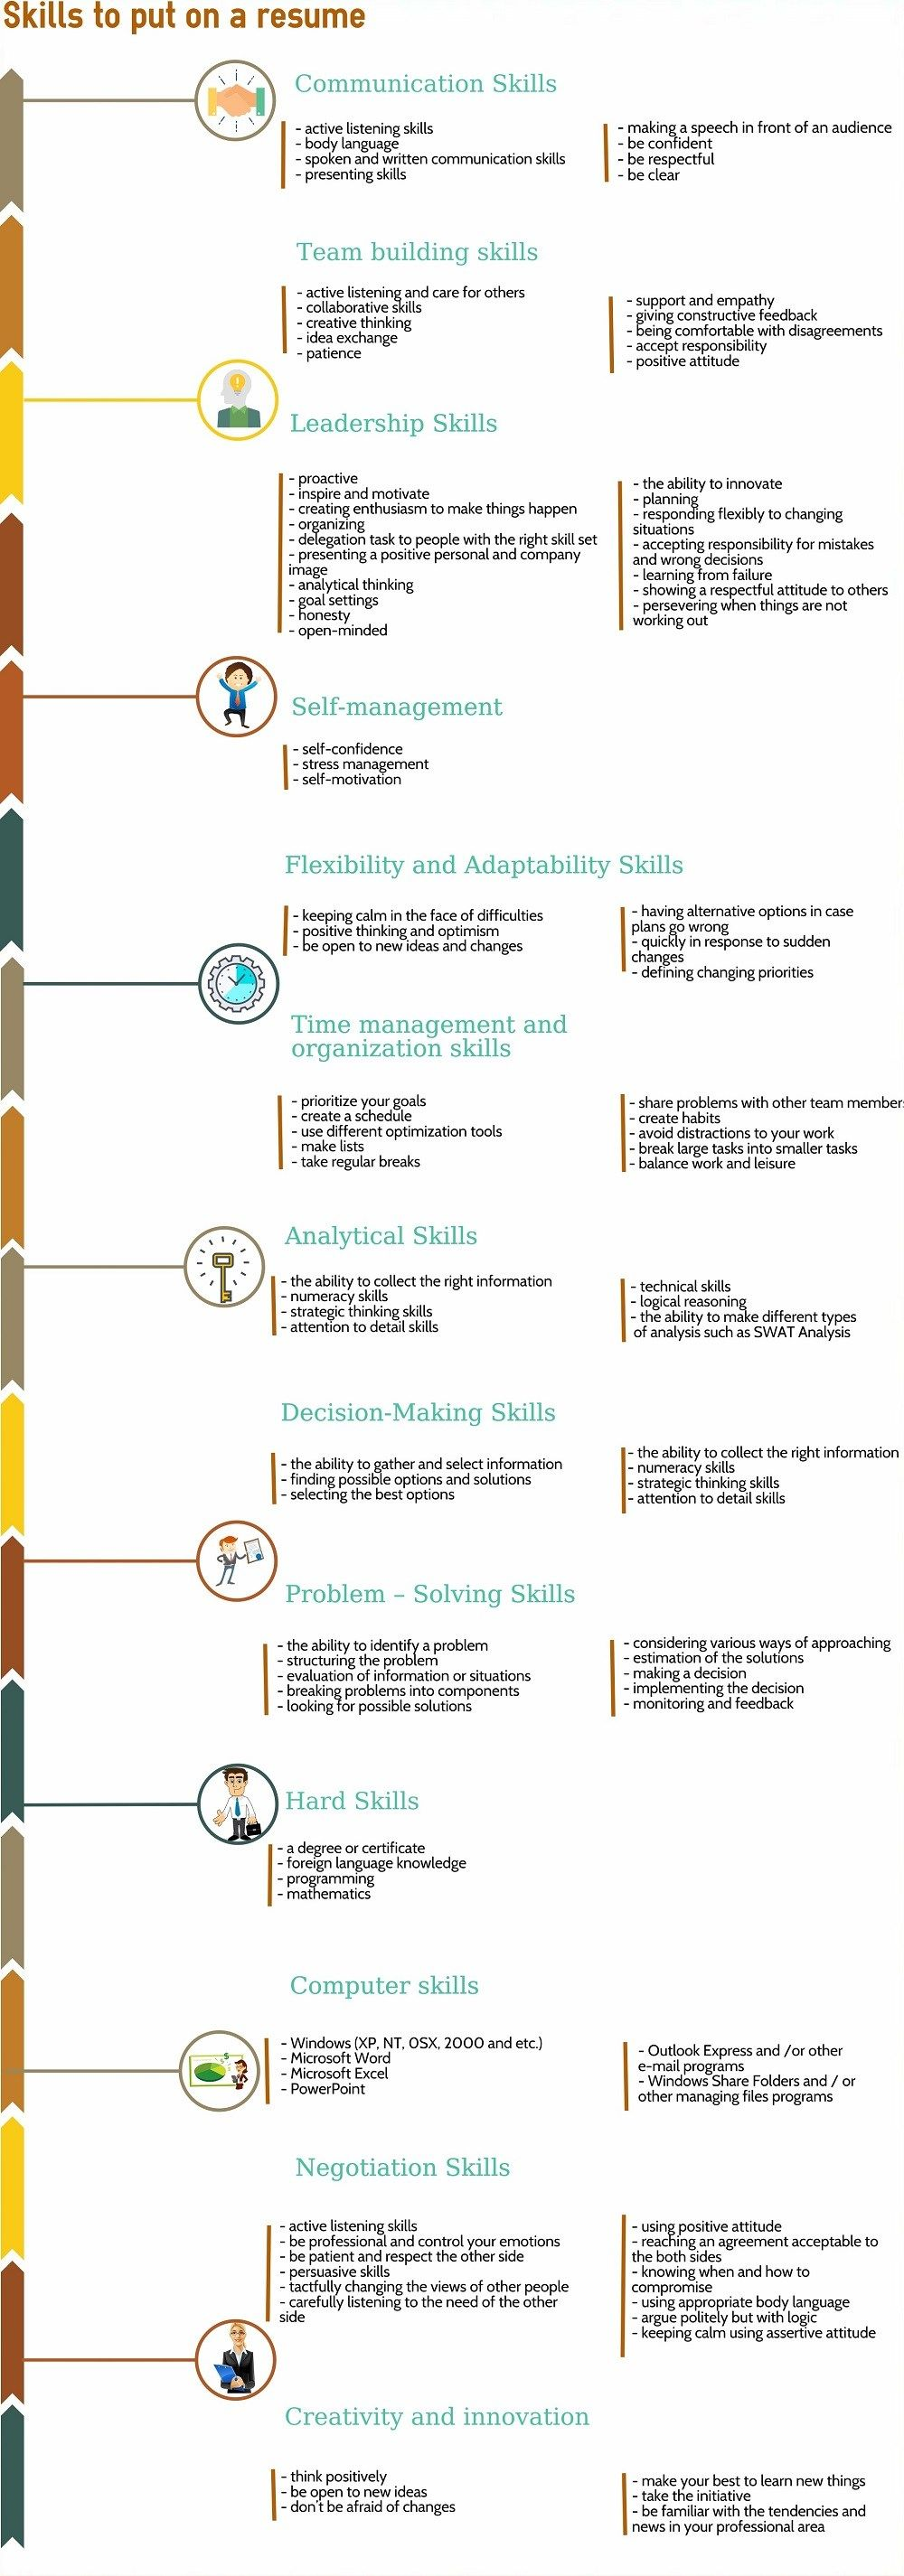 Skills To Put On A Resume Infographic Resume Skills List Resume Skills Infographic Resume